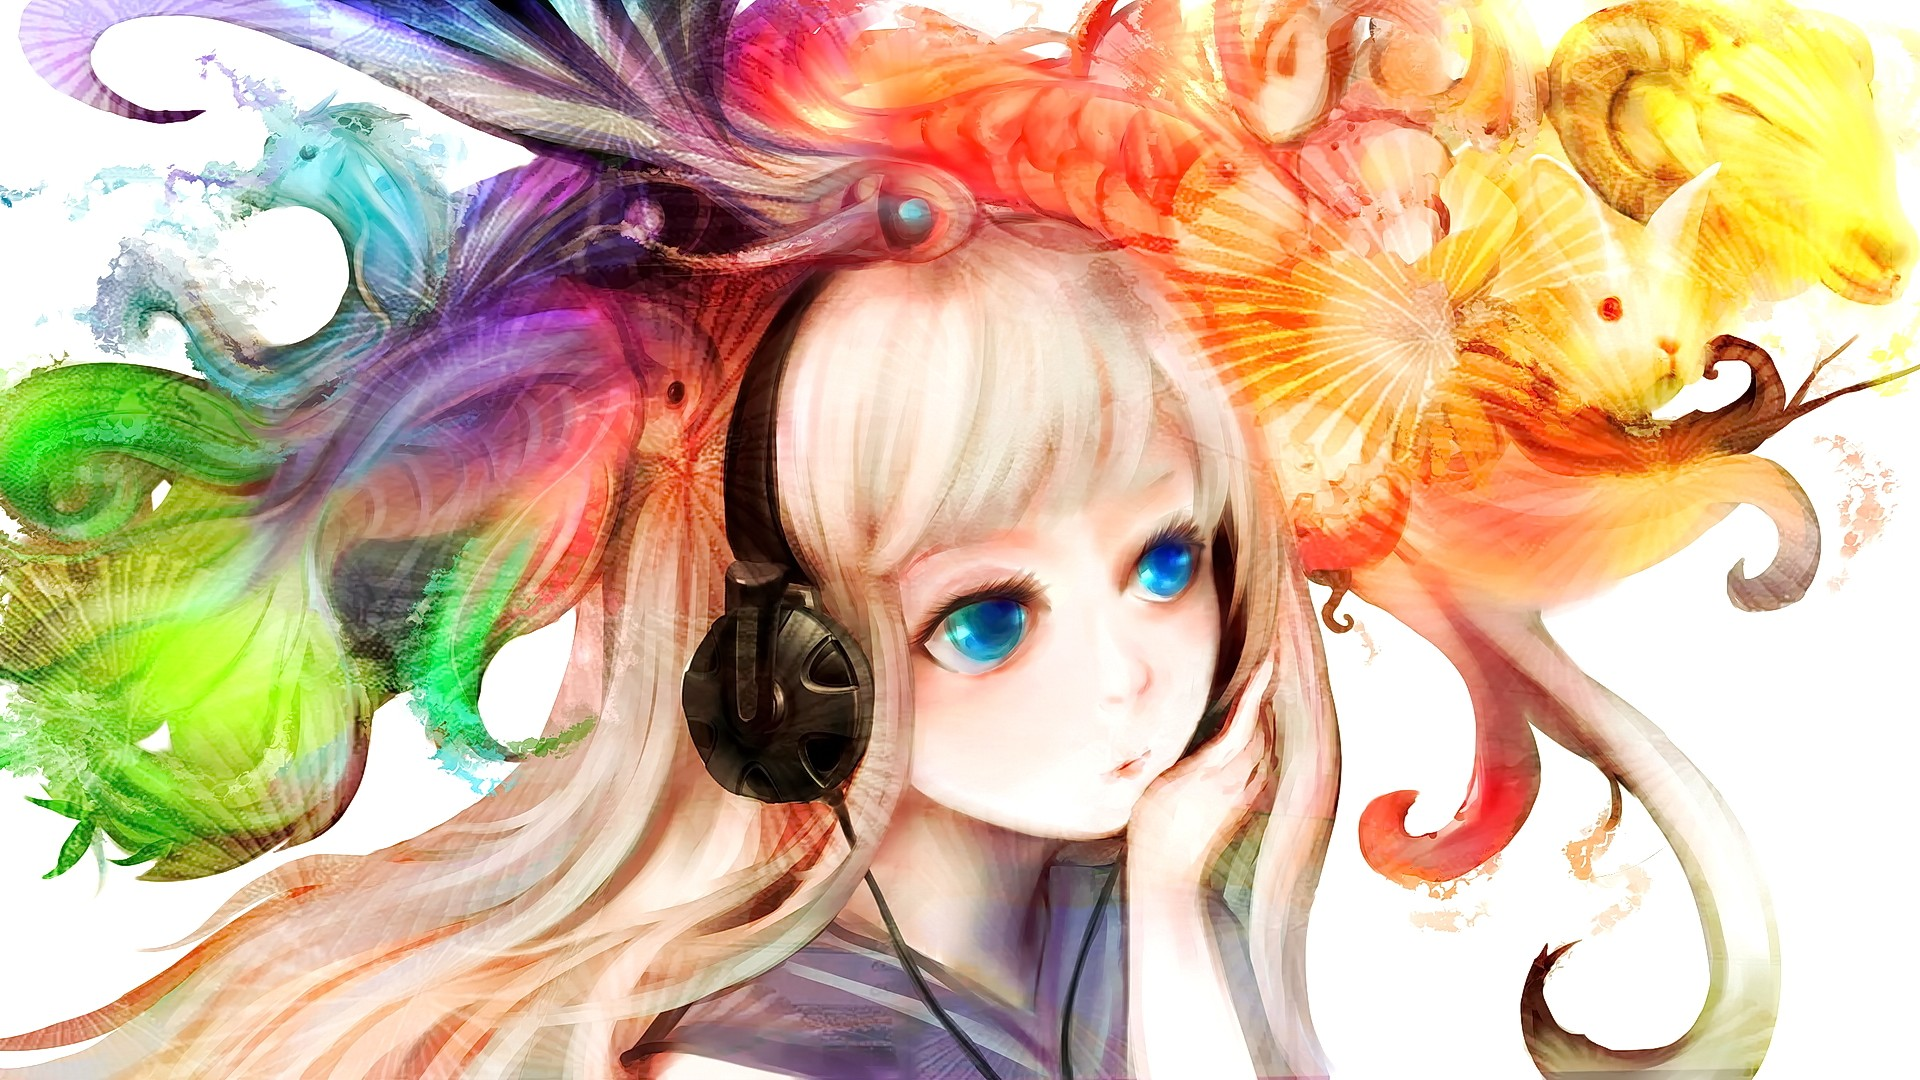 Anime 1920x1080 anime anime girls animals headphones original characters blue eyes fish unicorn rabbits